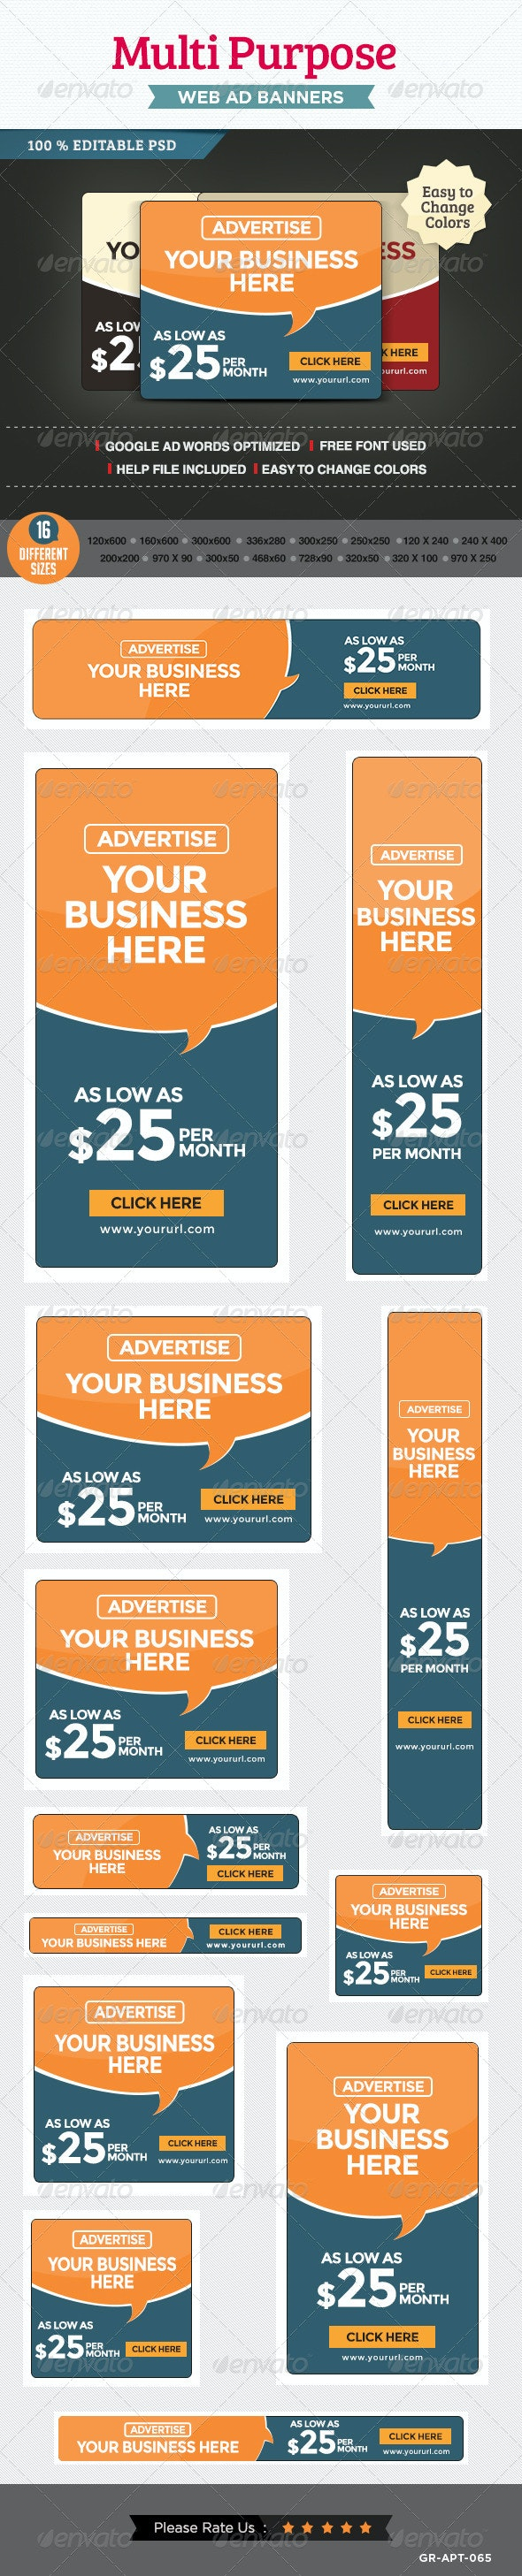 Multi Purpose Banner Ads - Banners & Ads Web Elements